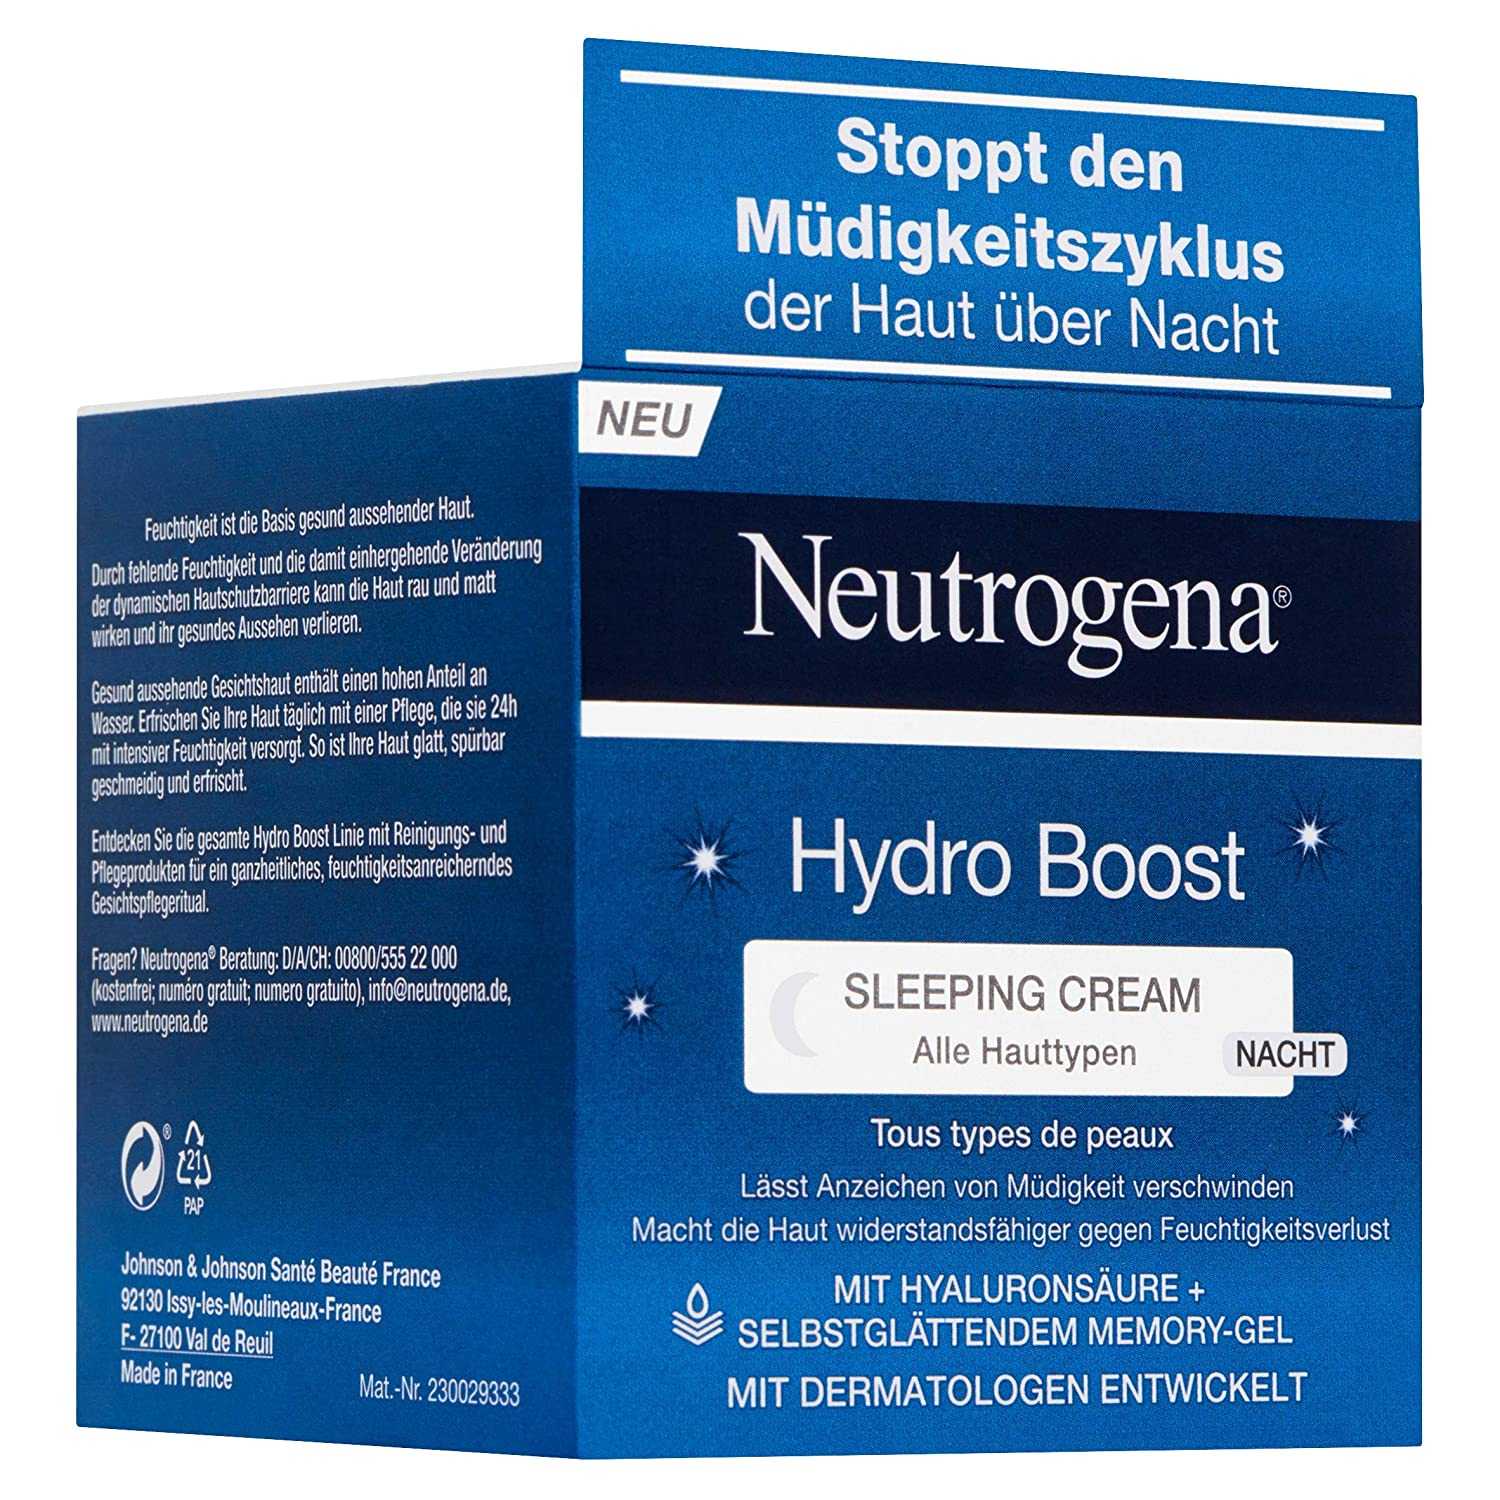 Neutrogena Hydro Boost Sleeping Cream, 1er Pack (1 x 50 ml): Amazon.es: Belleza